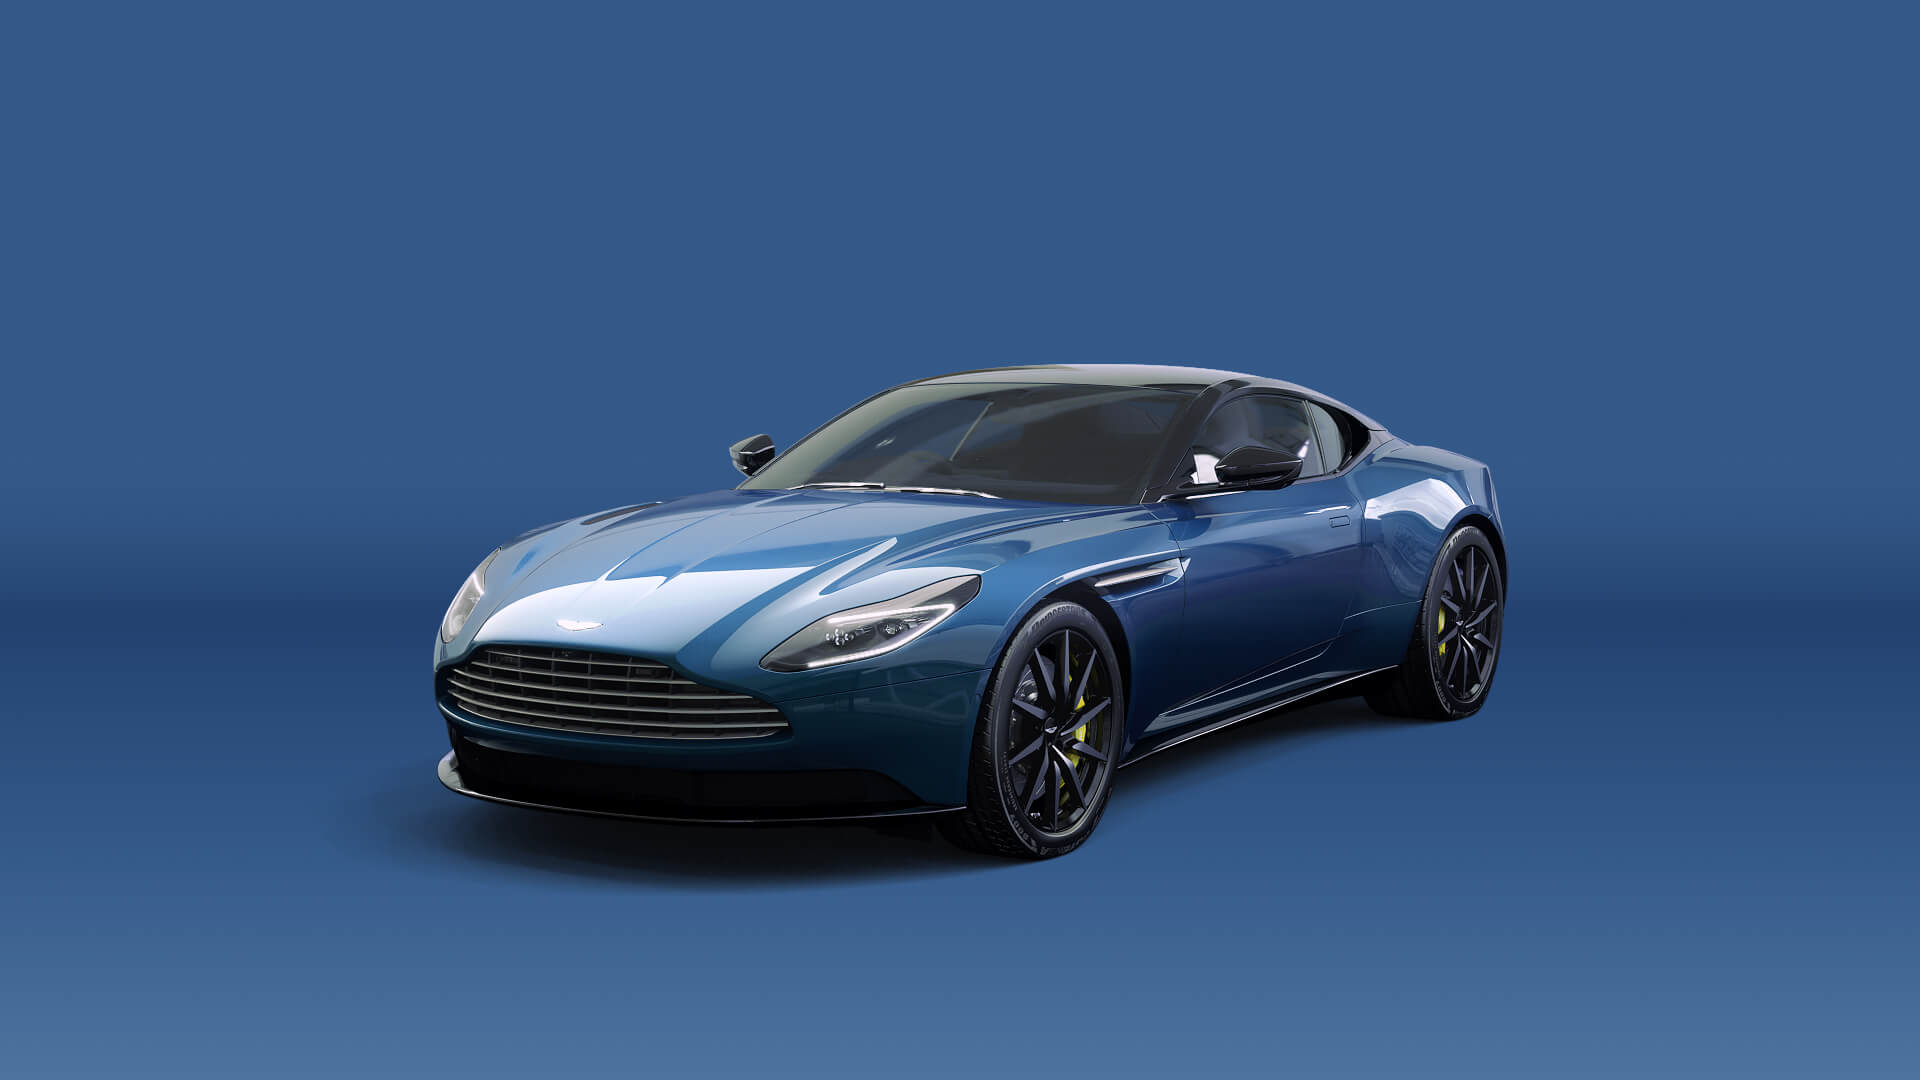 Aston Martin | Iconic Luxury British Sports Cars (USA) | aston martin parts online